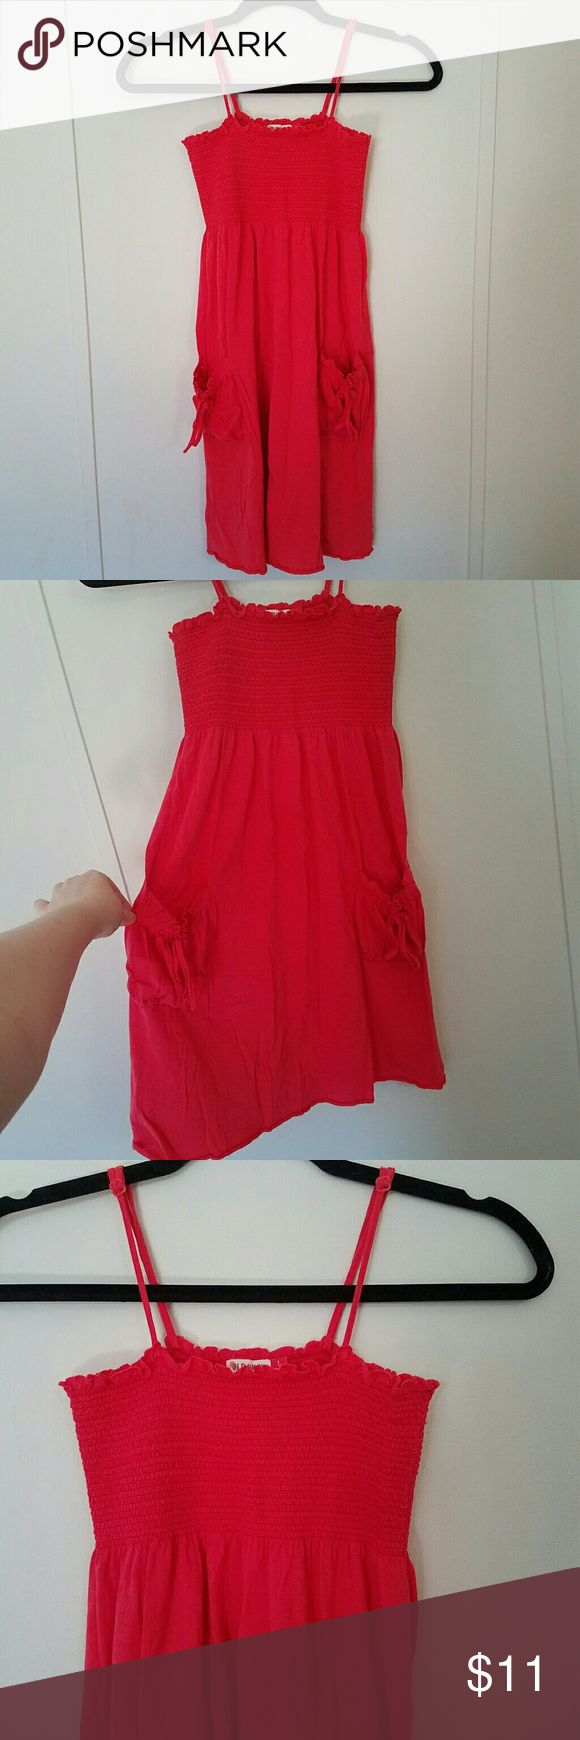 Old Navy Coral Sundress Old Navy coral sundress with adjustable straps and pockets.  Stretchy smocked bust.  2 side pockets with ties.  Only worn a few times!  Excellent condition!  Size Large. Old Navy Dresses Mini